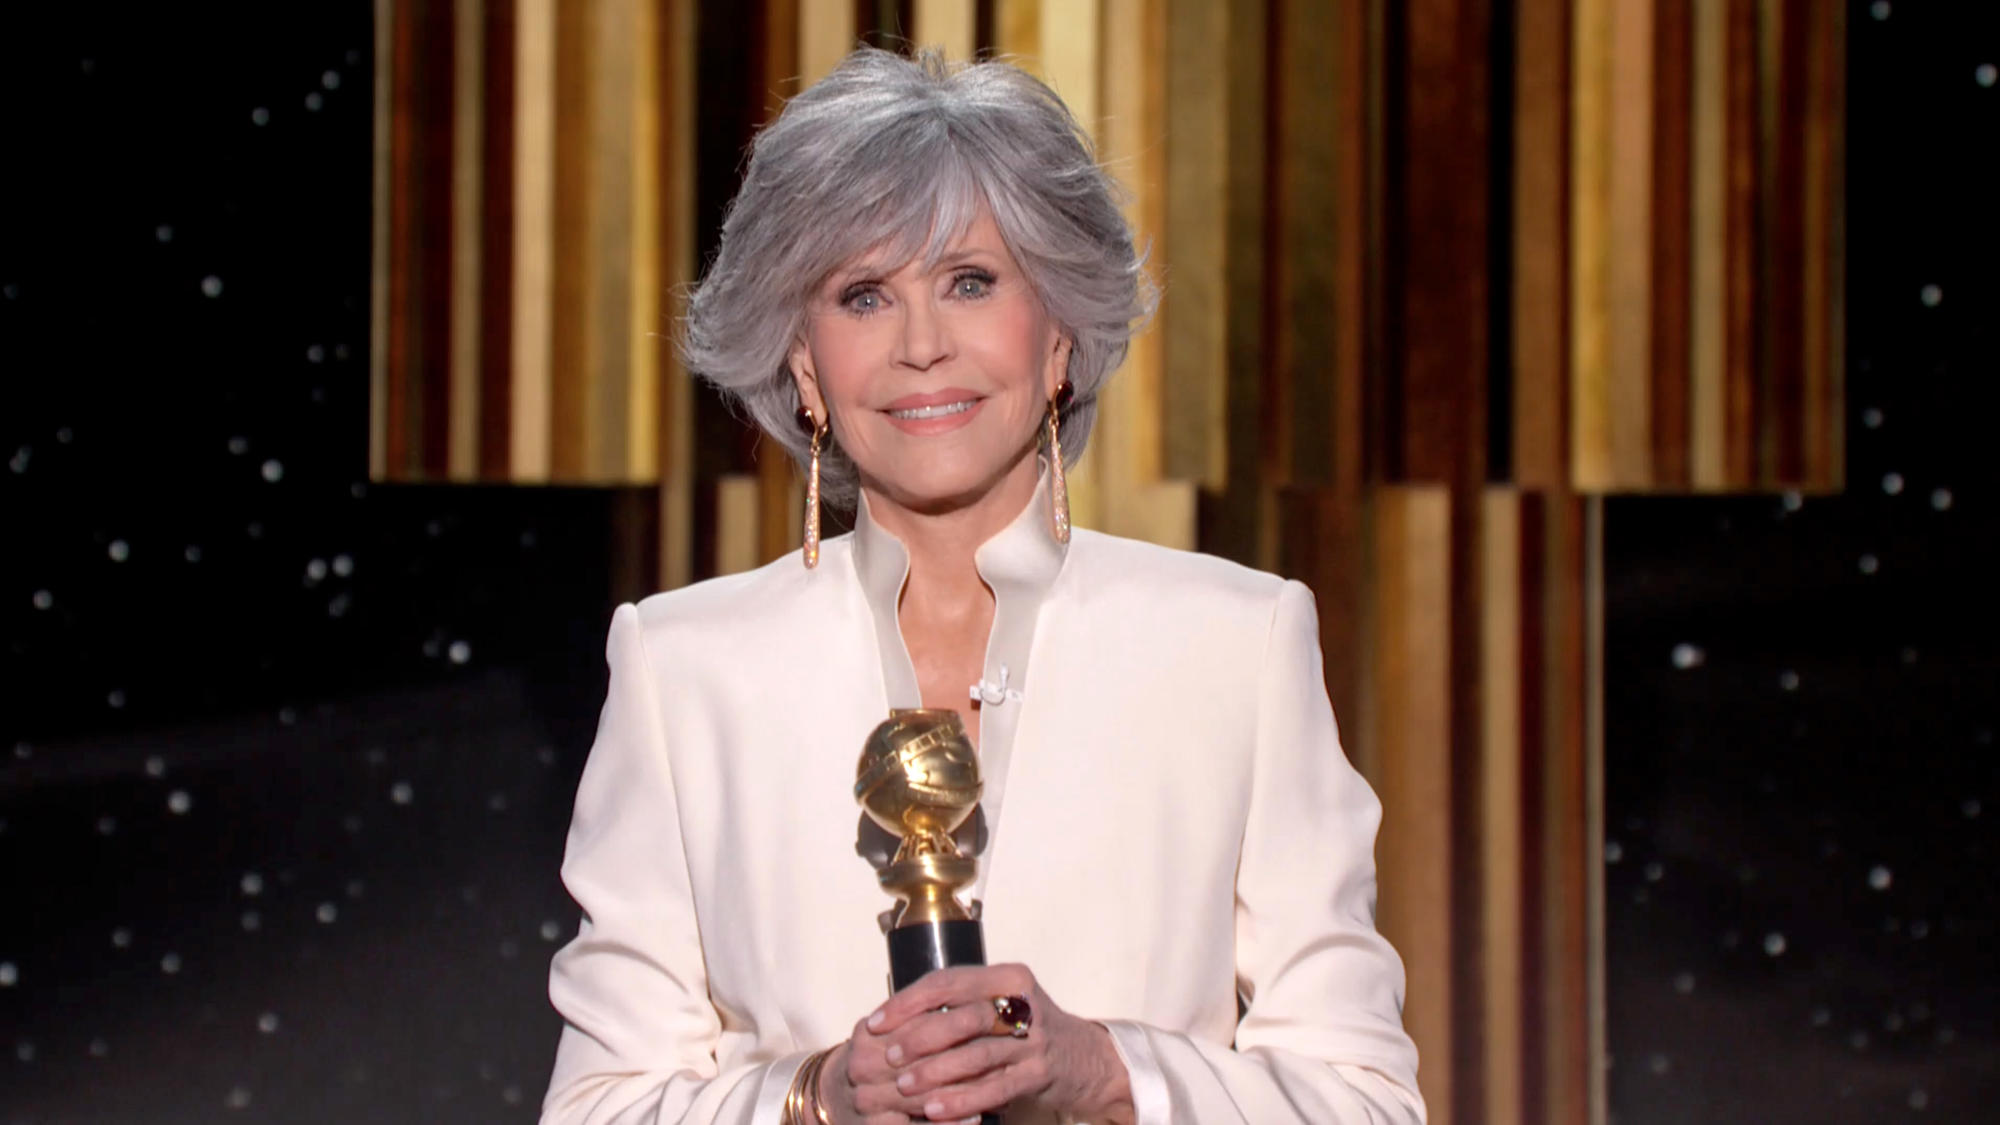 Jane Fonda called 'ahead of her time' as video of her using sign language at 1979 Oscars resurfaces